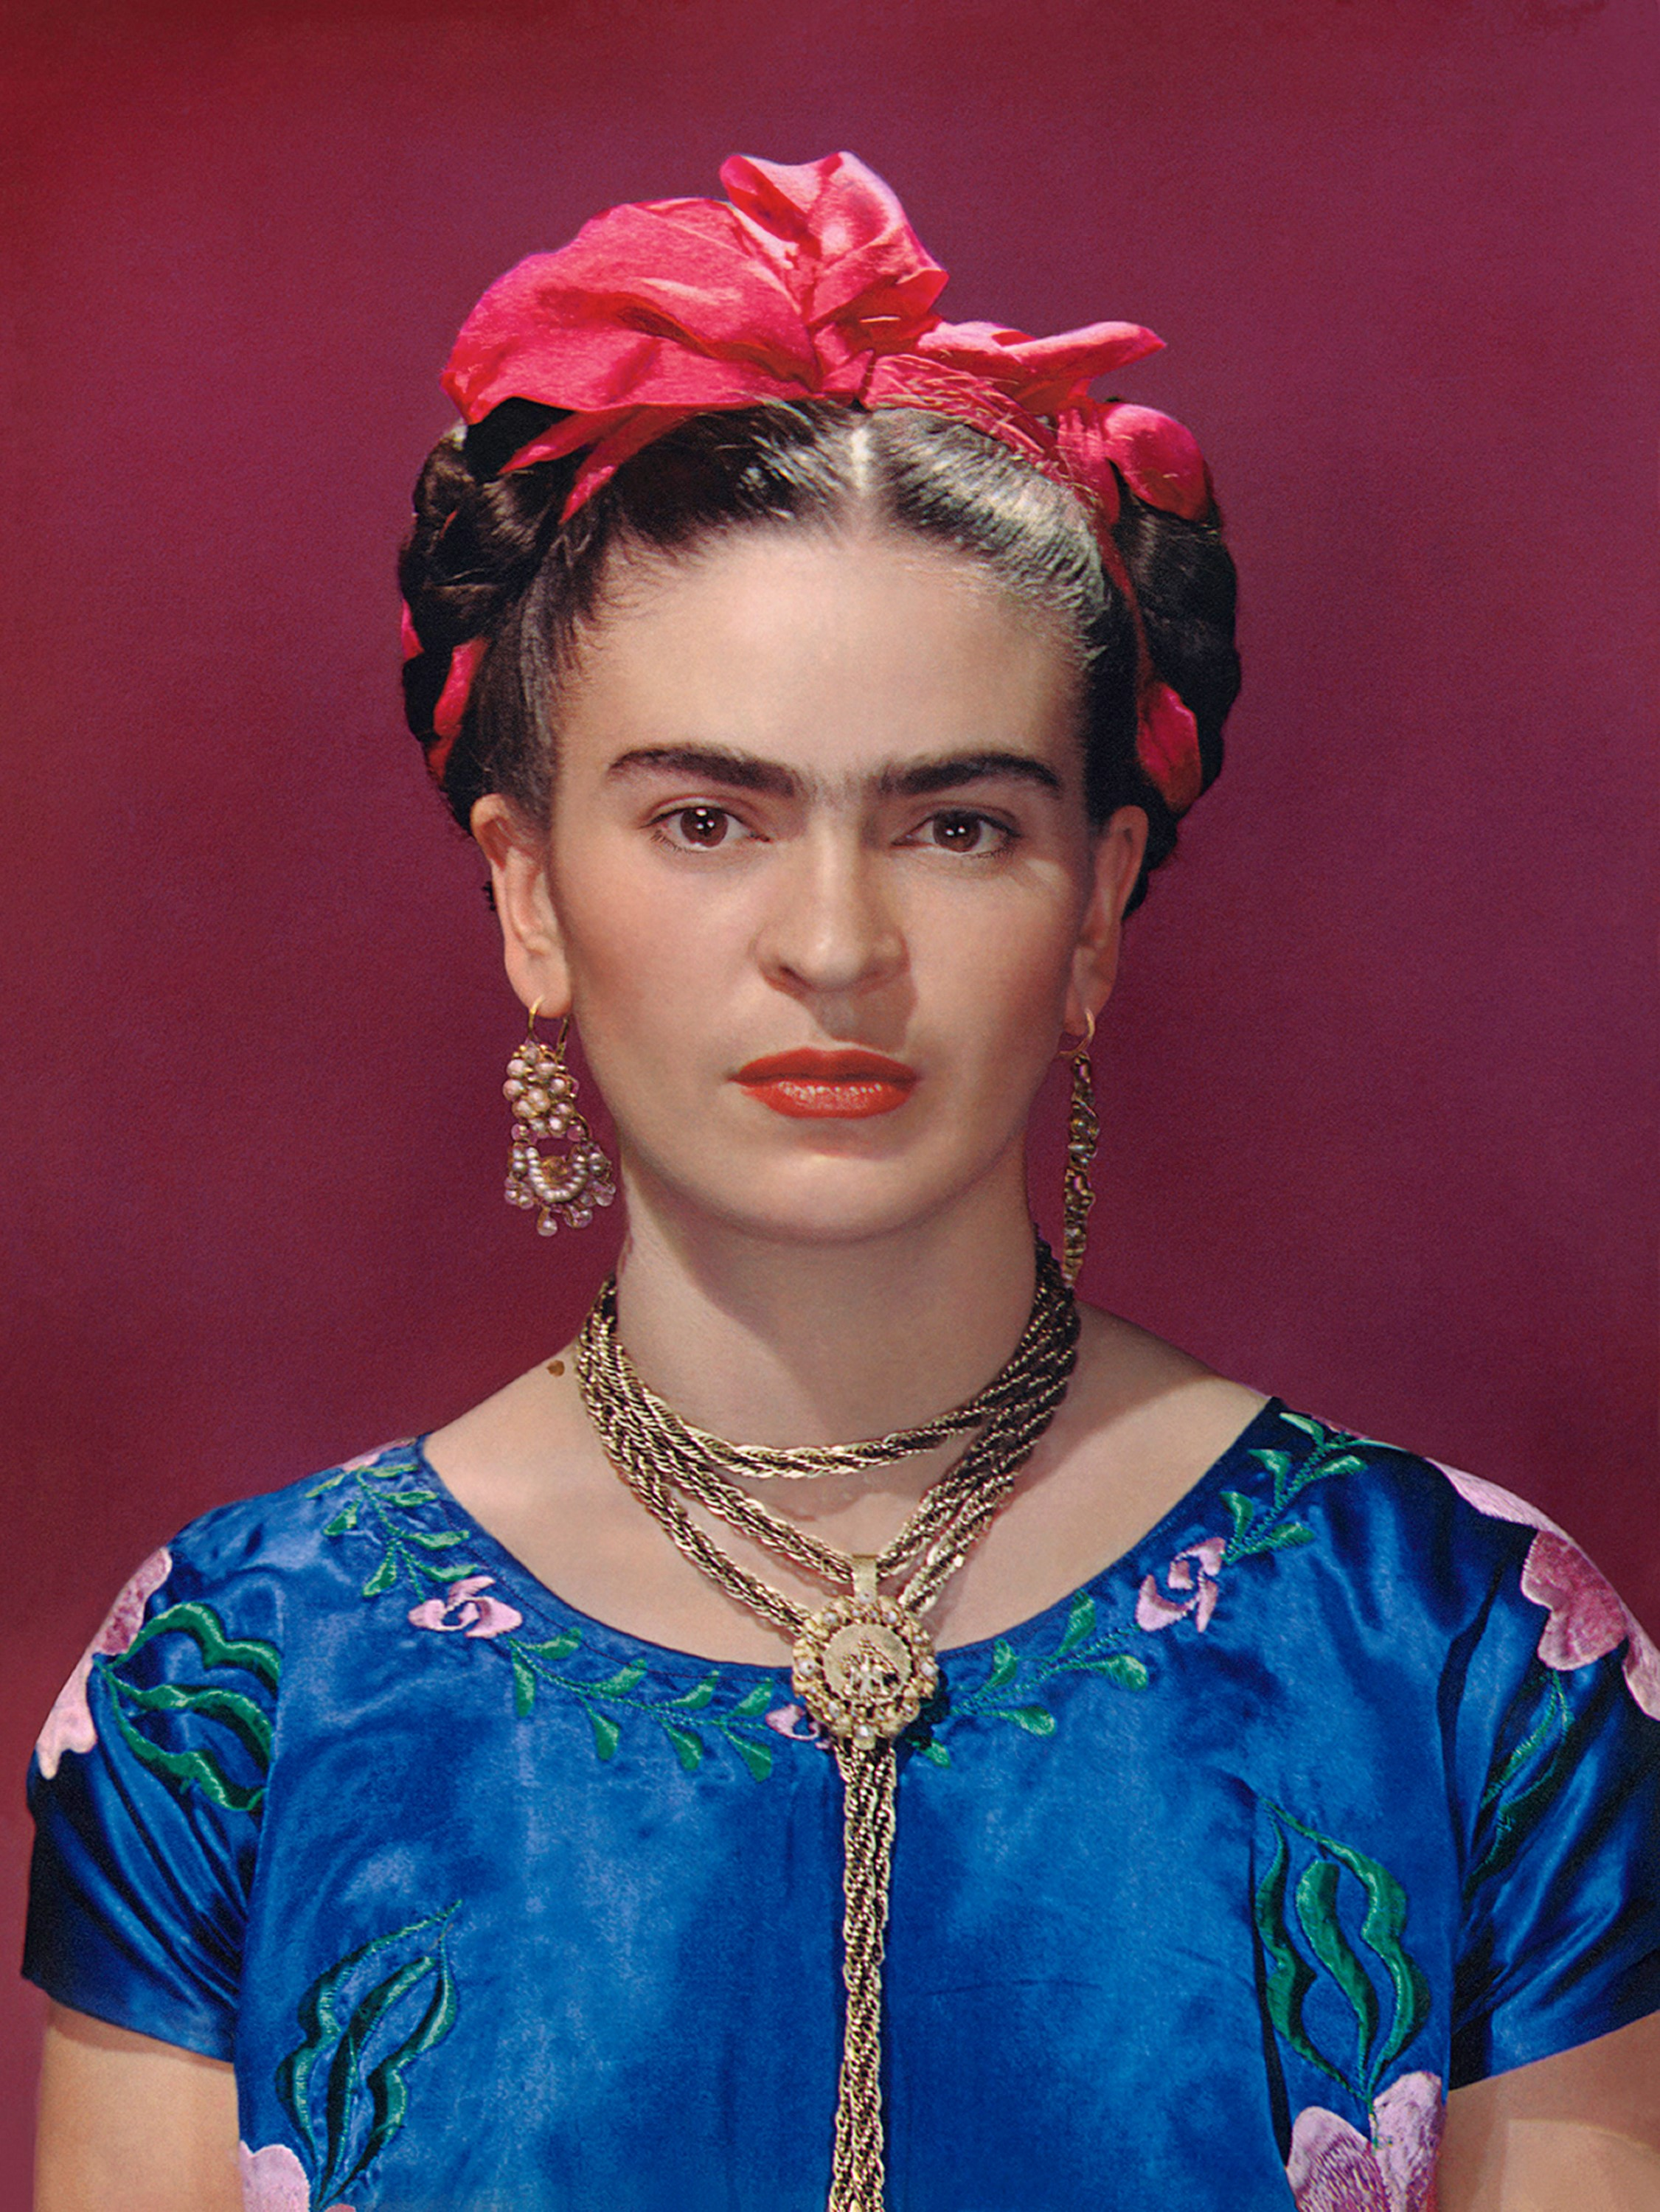 Frida Kahlo in blue satin blouse, 1939, photograph by Nickolas Muray (Nickolas Muray Photo Archives)